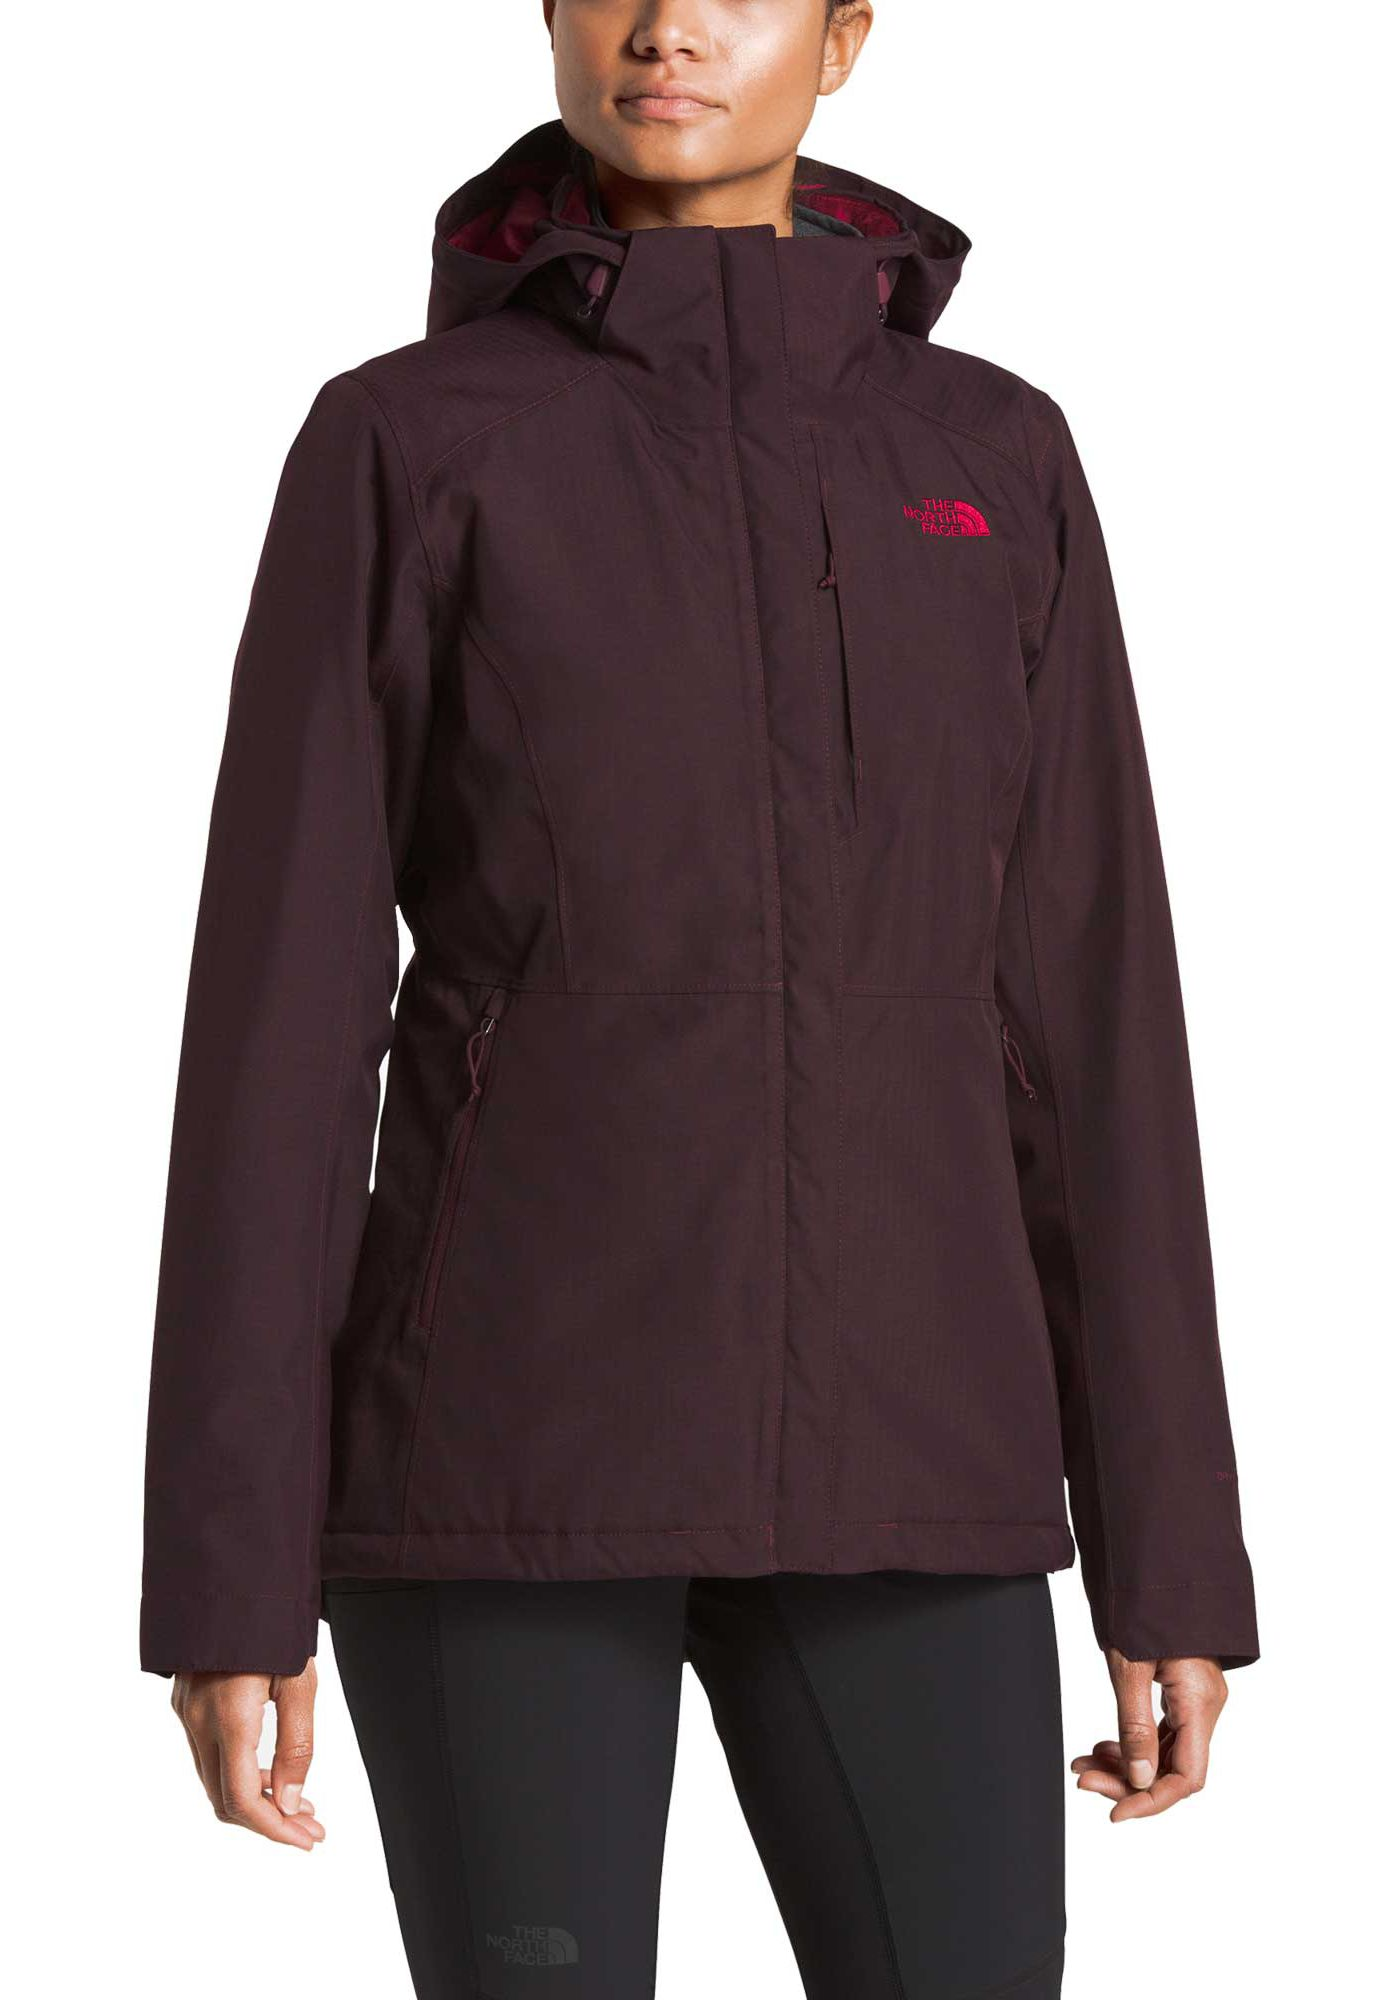 The North Face Women's Inlux 20 Insulated Jacket